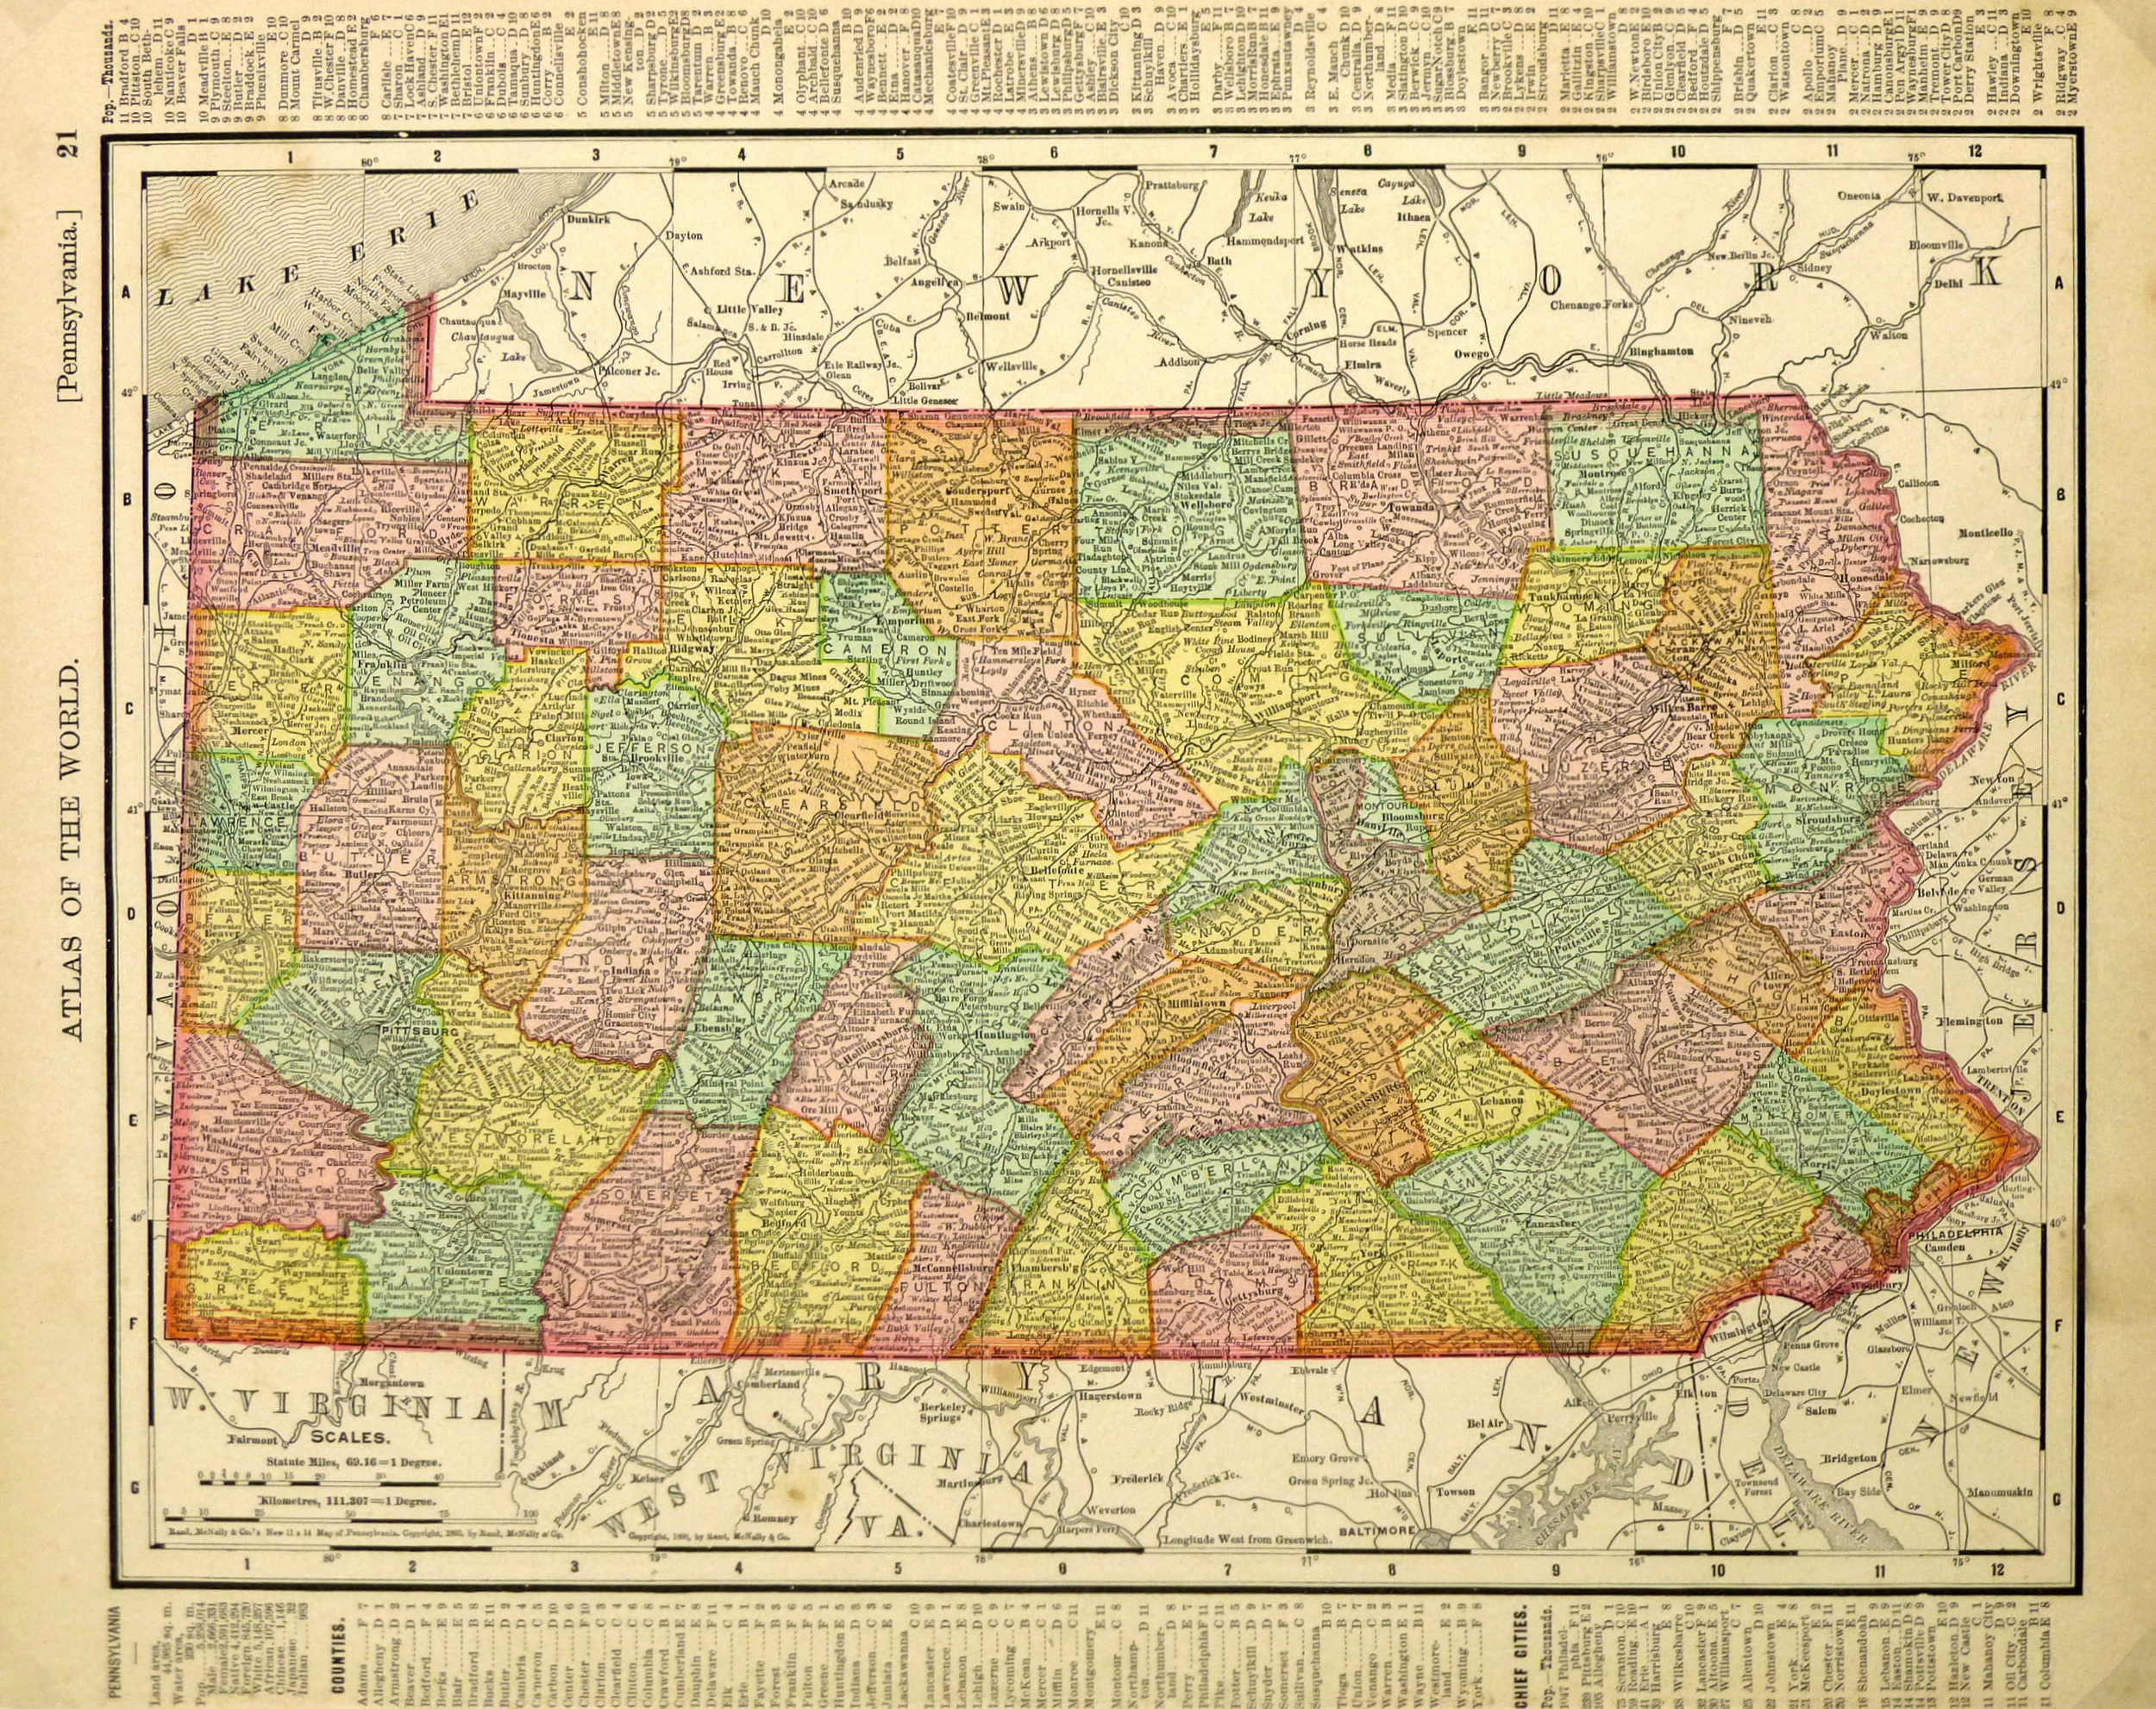 Map of Pennsylvania, 1895-main-6449K